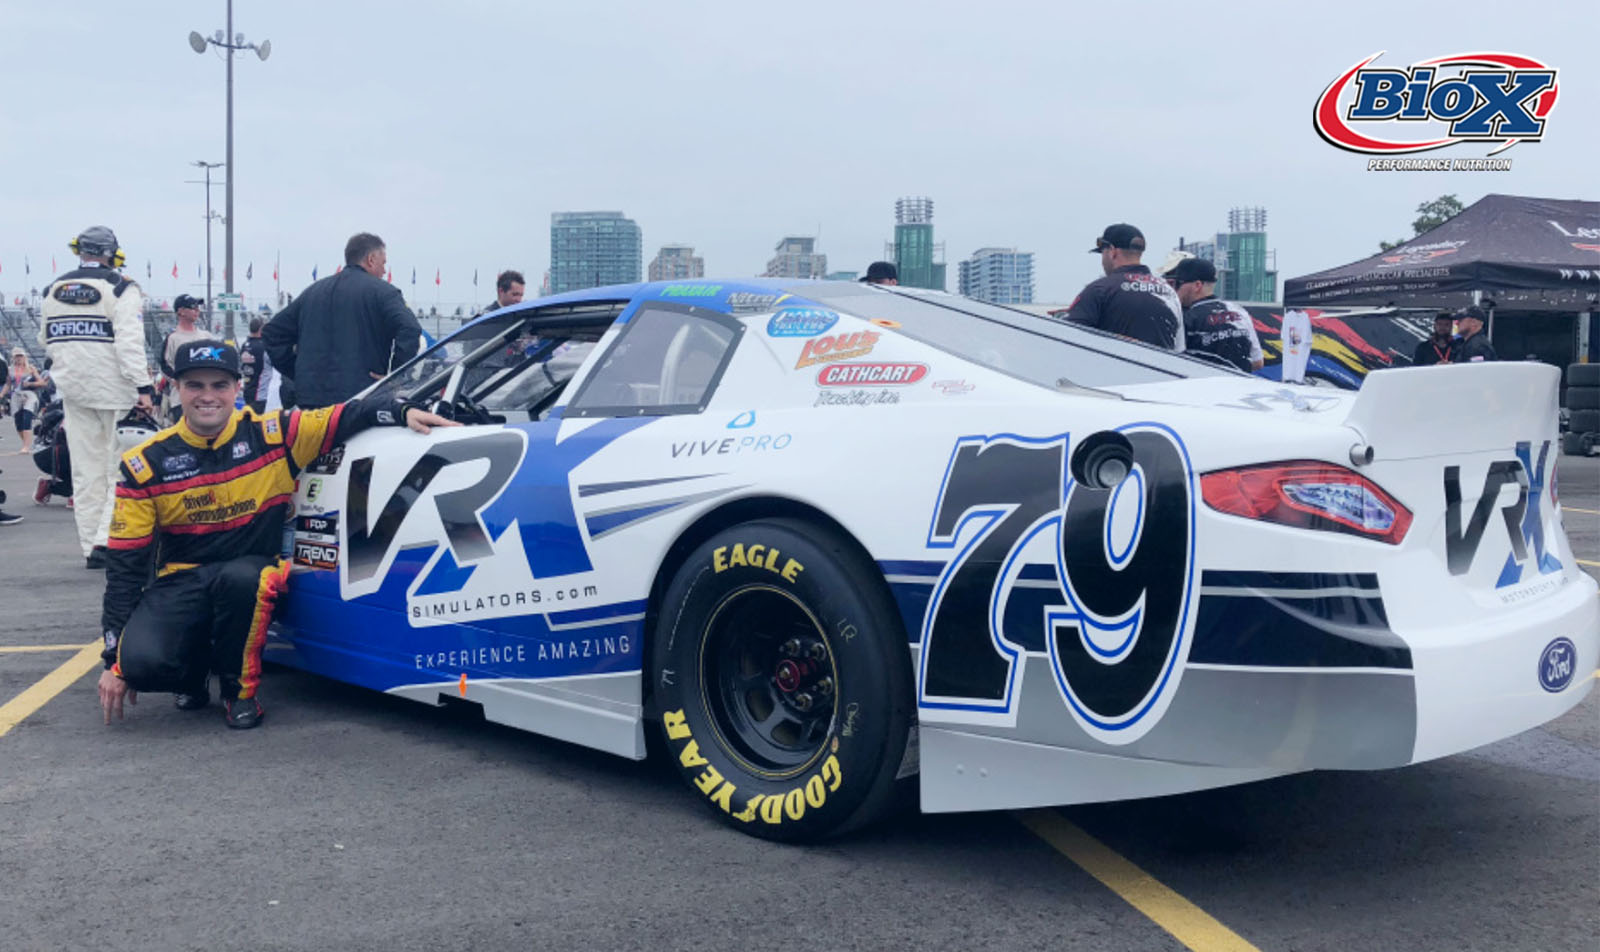 Shepherd Grabs with VRX at Pinty's Grand Prix in Toronto